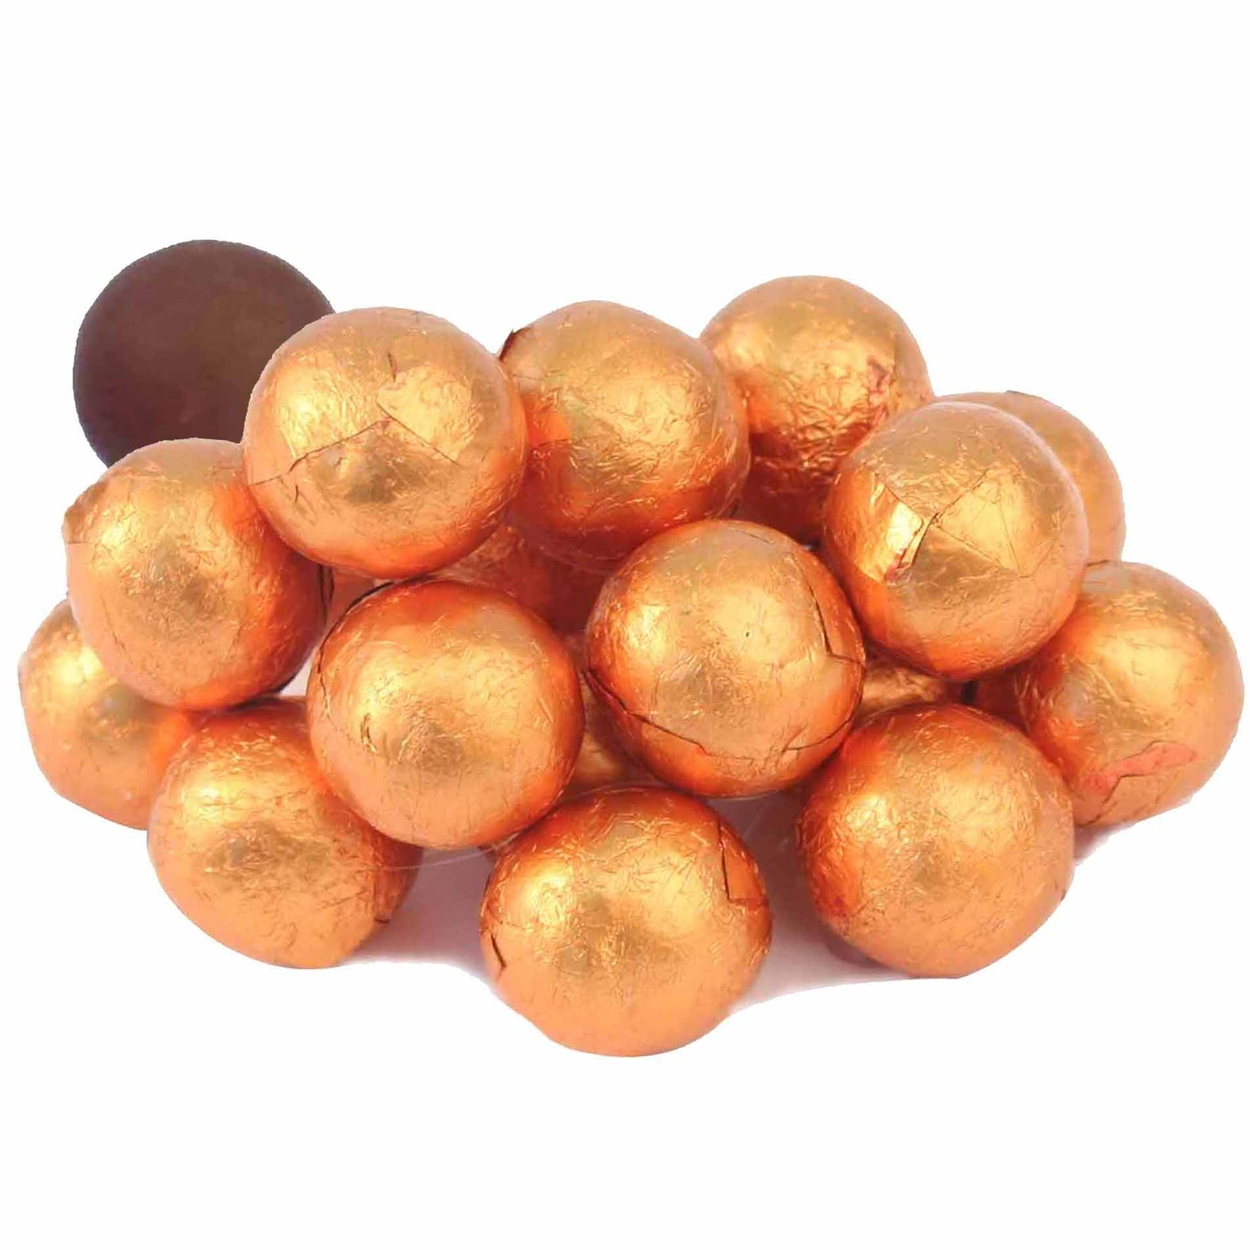 Foiled Milk Chocolate Balls - Buy Bulk by The Pound • Oh! Nuts®